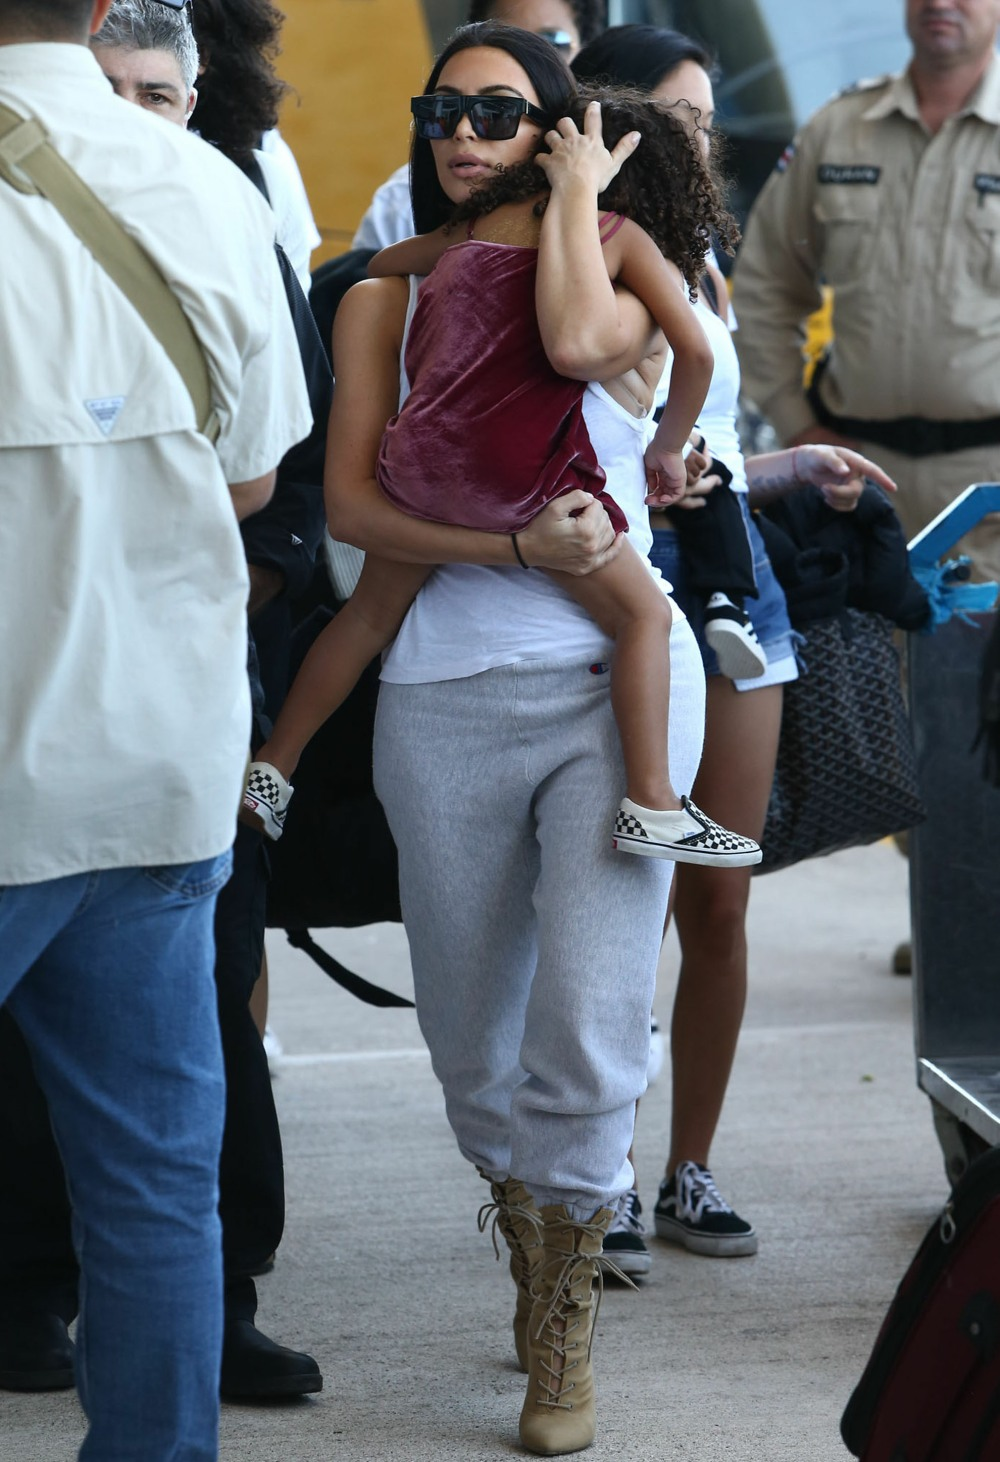 The Kardashian Family Departing On A Flight In Costa Rica  bitchy | Kim Kardashian claims she works out 'each single day for over an hour' FFN BJJMiamiPixxAKM Kardashian Family 013017 52299308